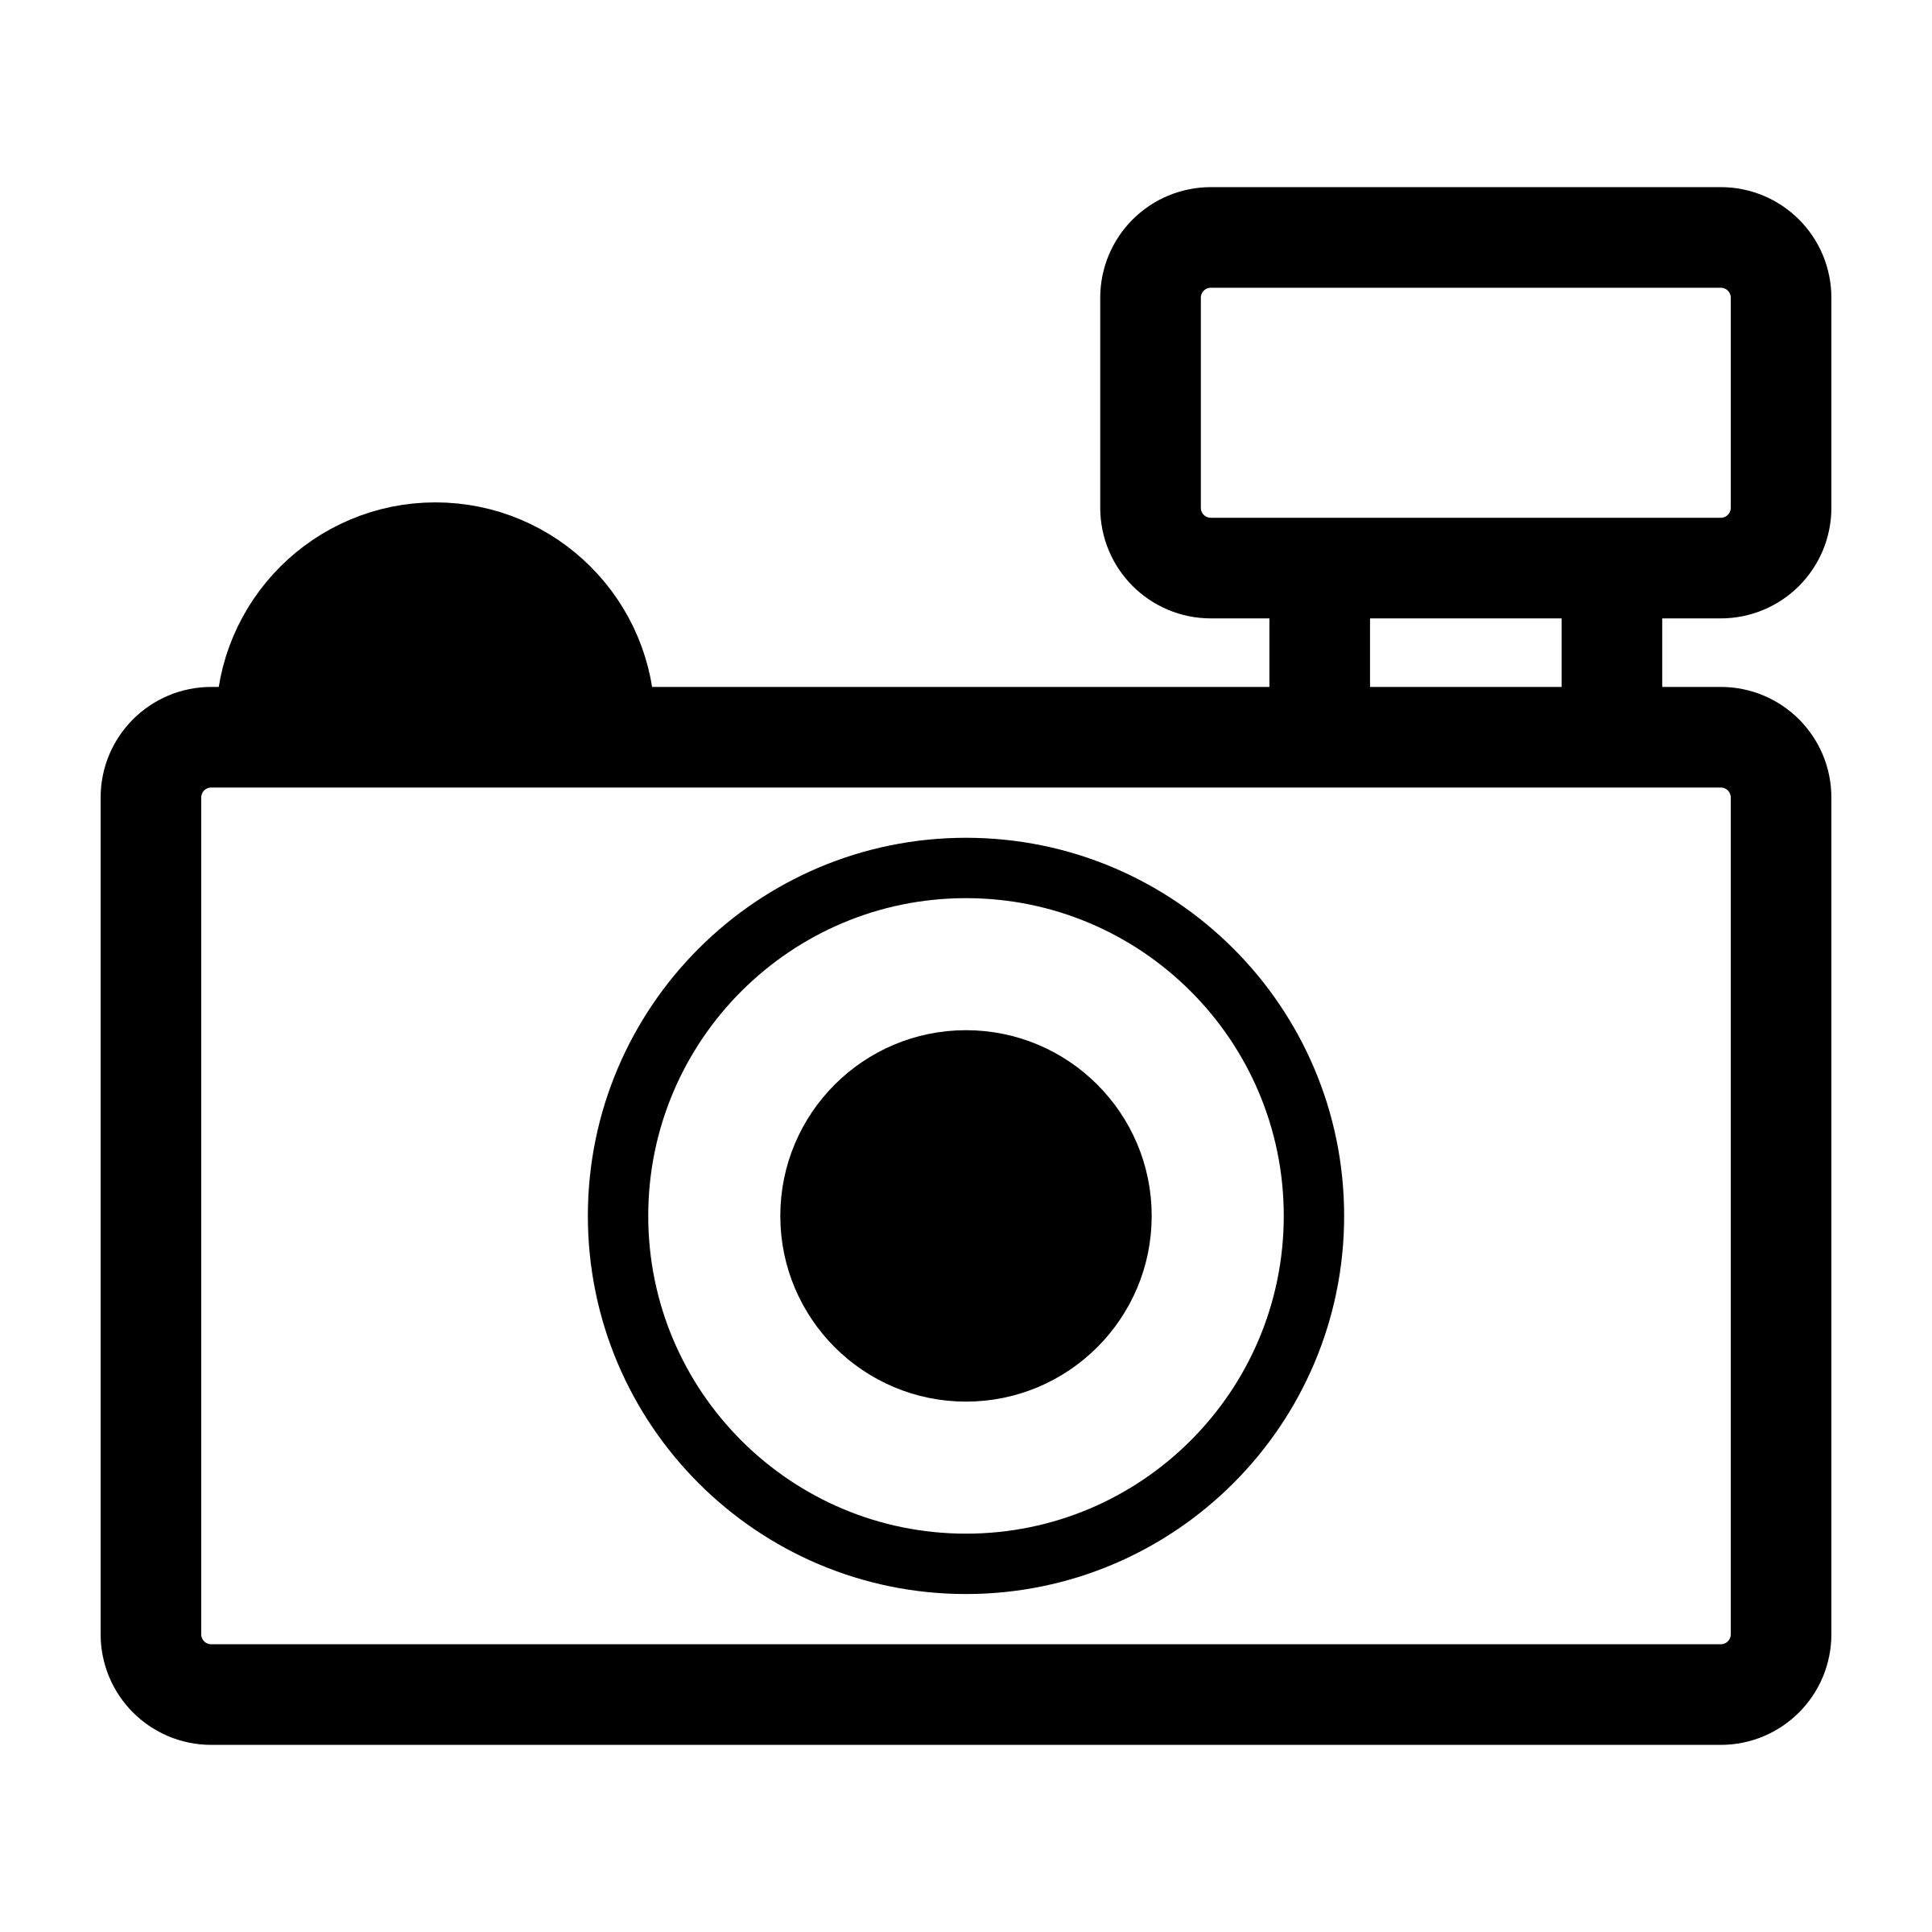 Png camera clipart black and white word art image transparent Best Camera Clipart #25769 - Clipartion.com image transparent